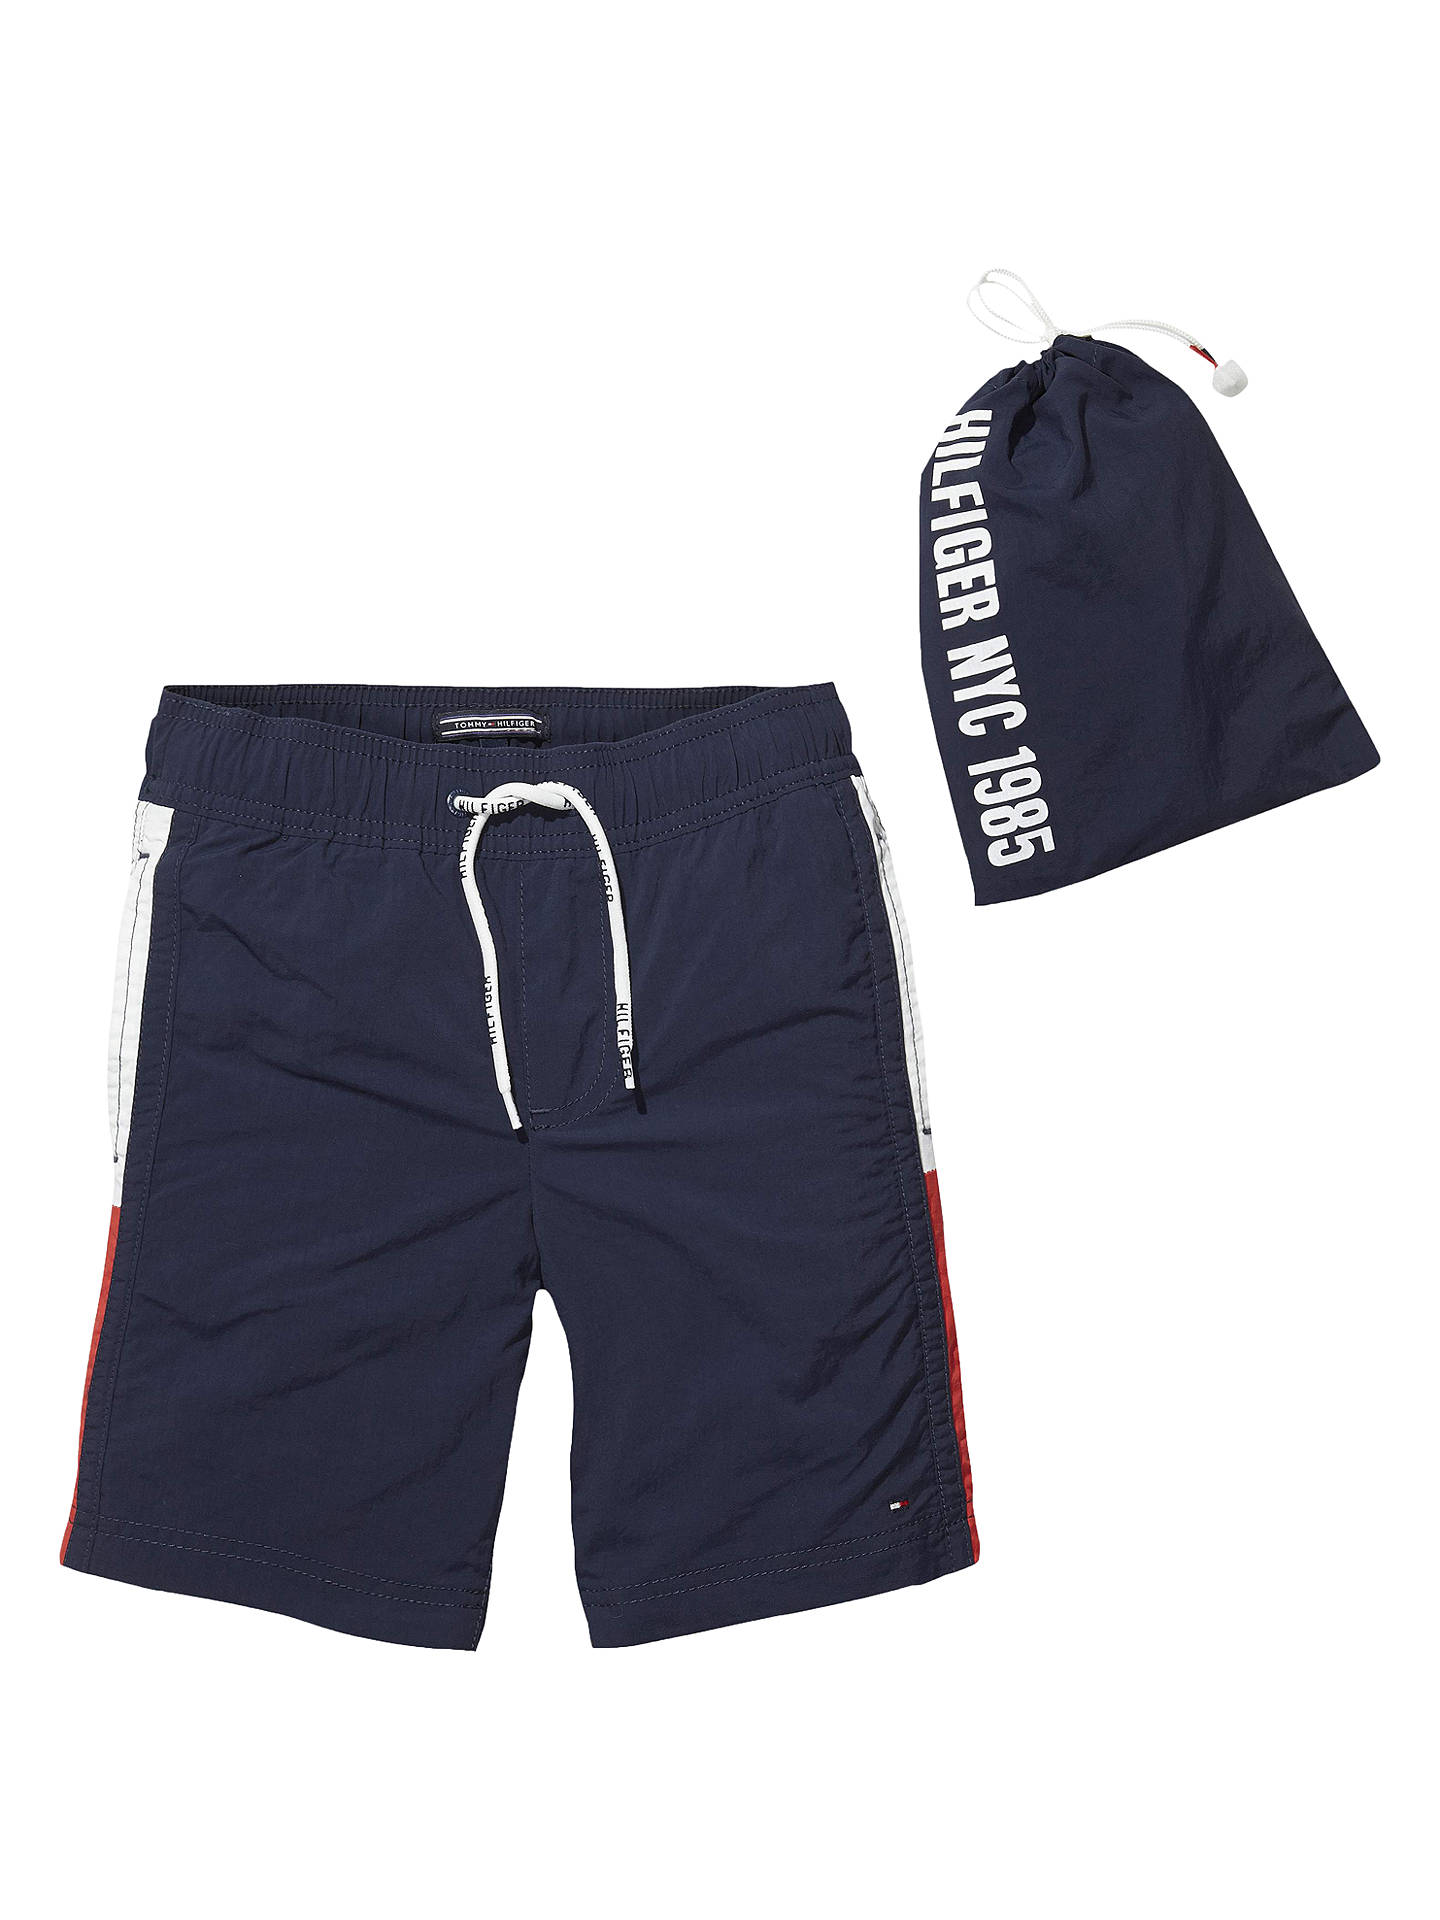 54865351a Buy Tommy Hilfiger Boys' Flag Swim Shorts, Navy, 5 years Online at  johnlewis ...